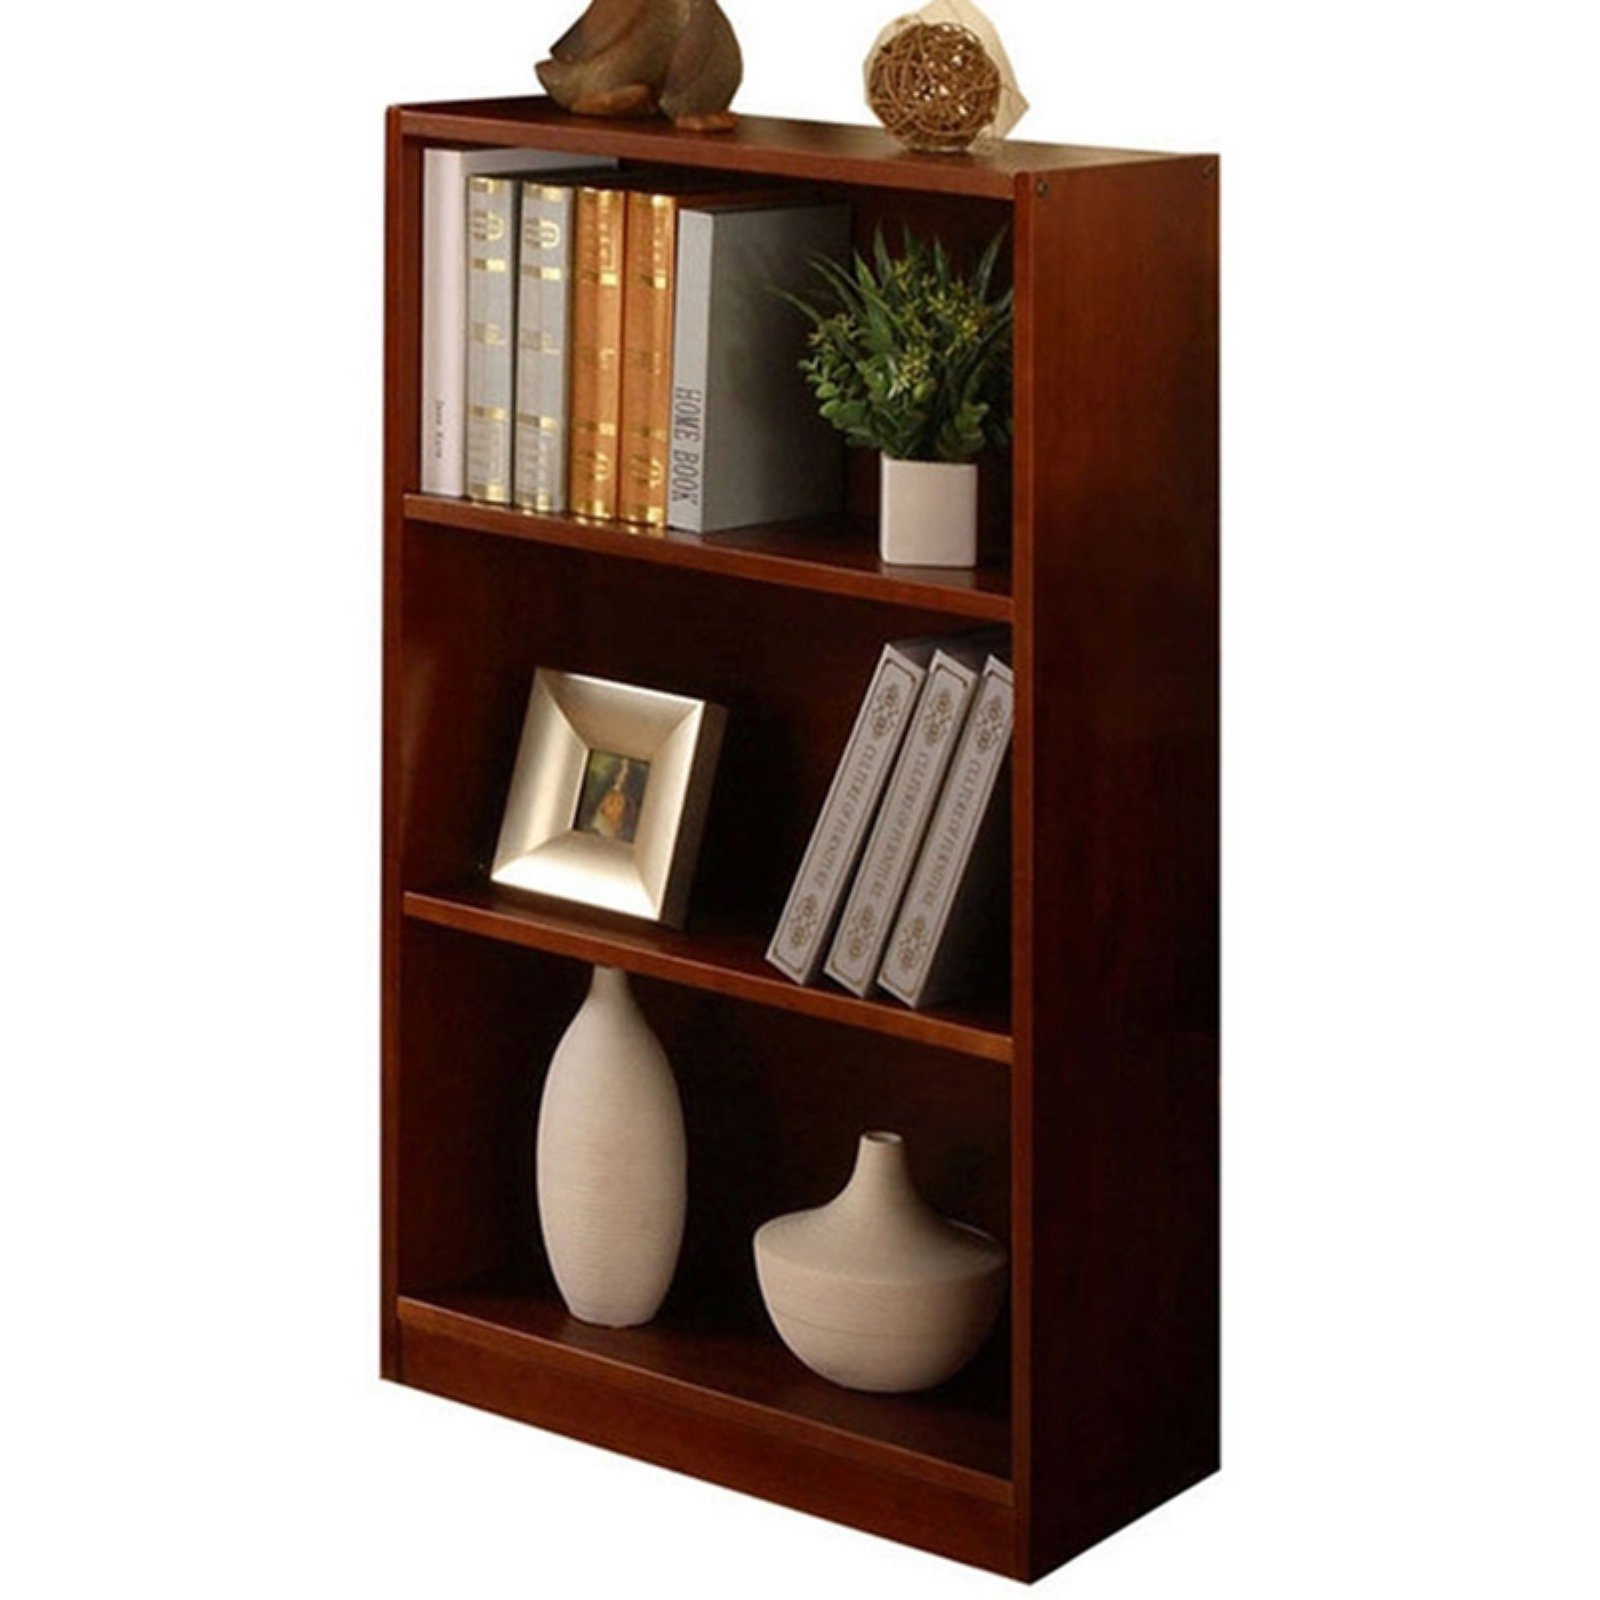 "American Furniture Classics 42"" Bookshelf, Merlot Finish"